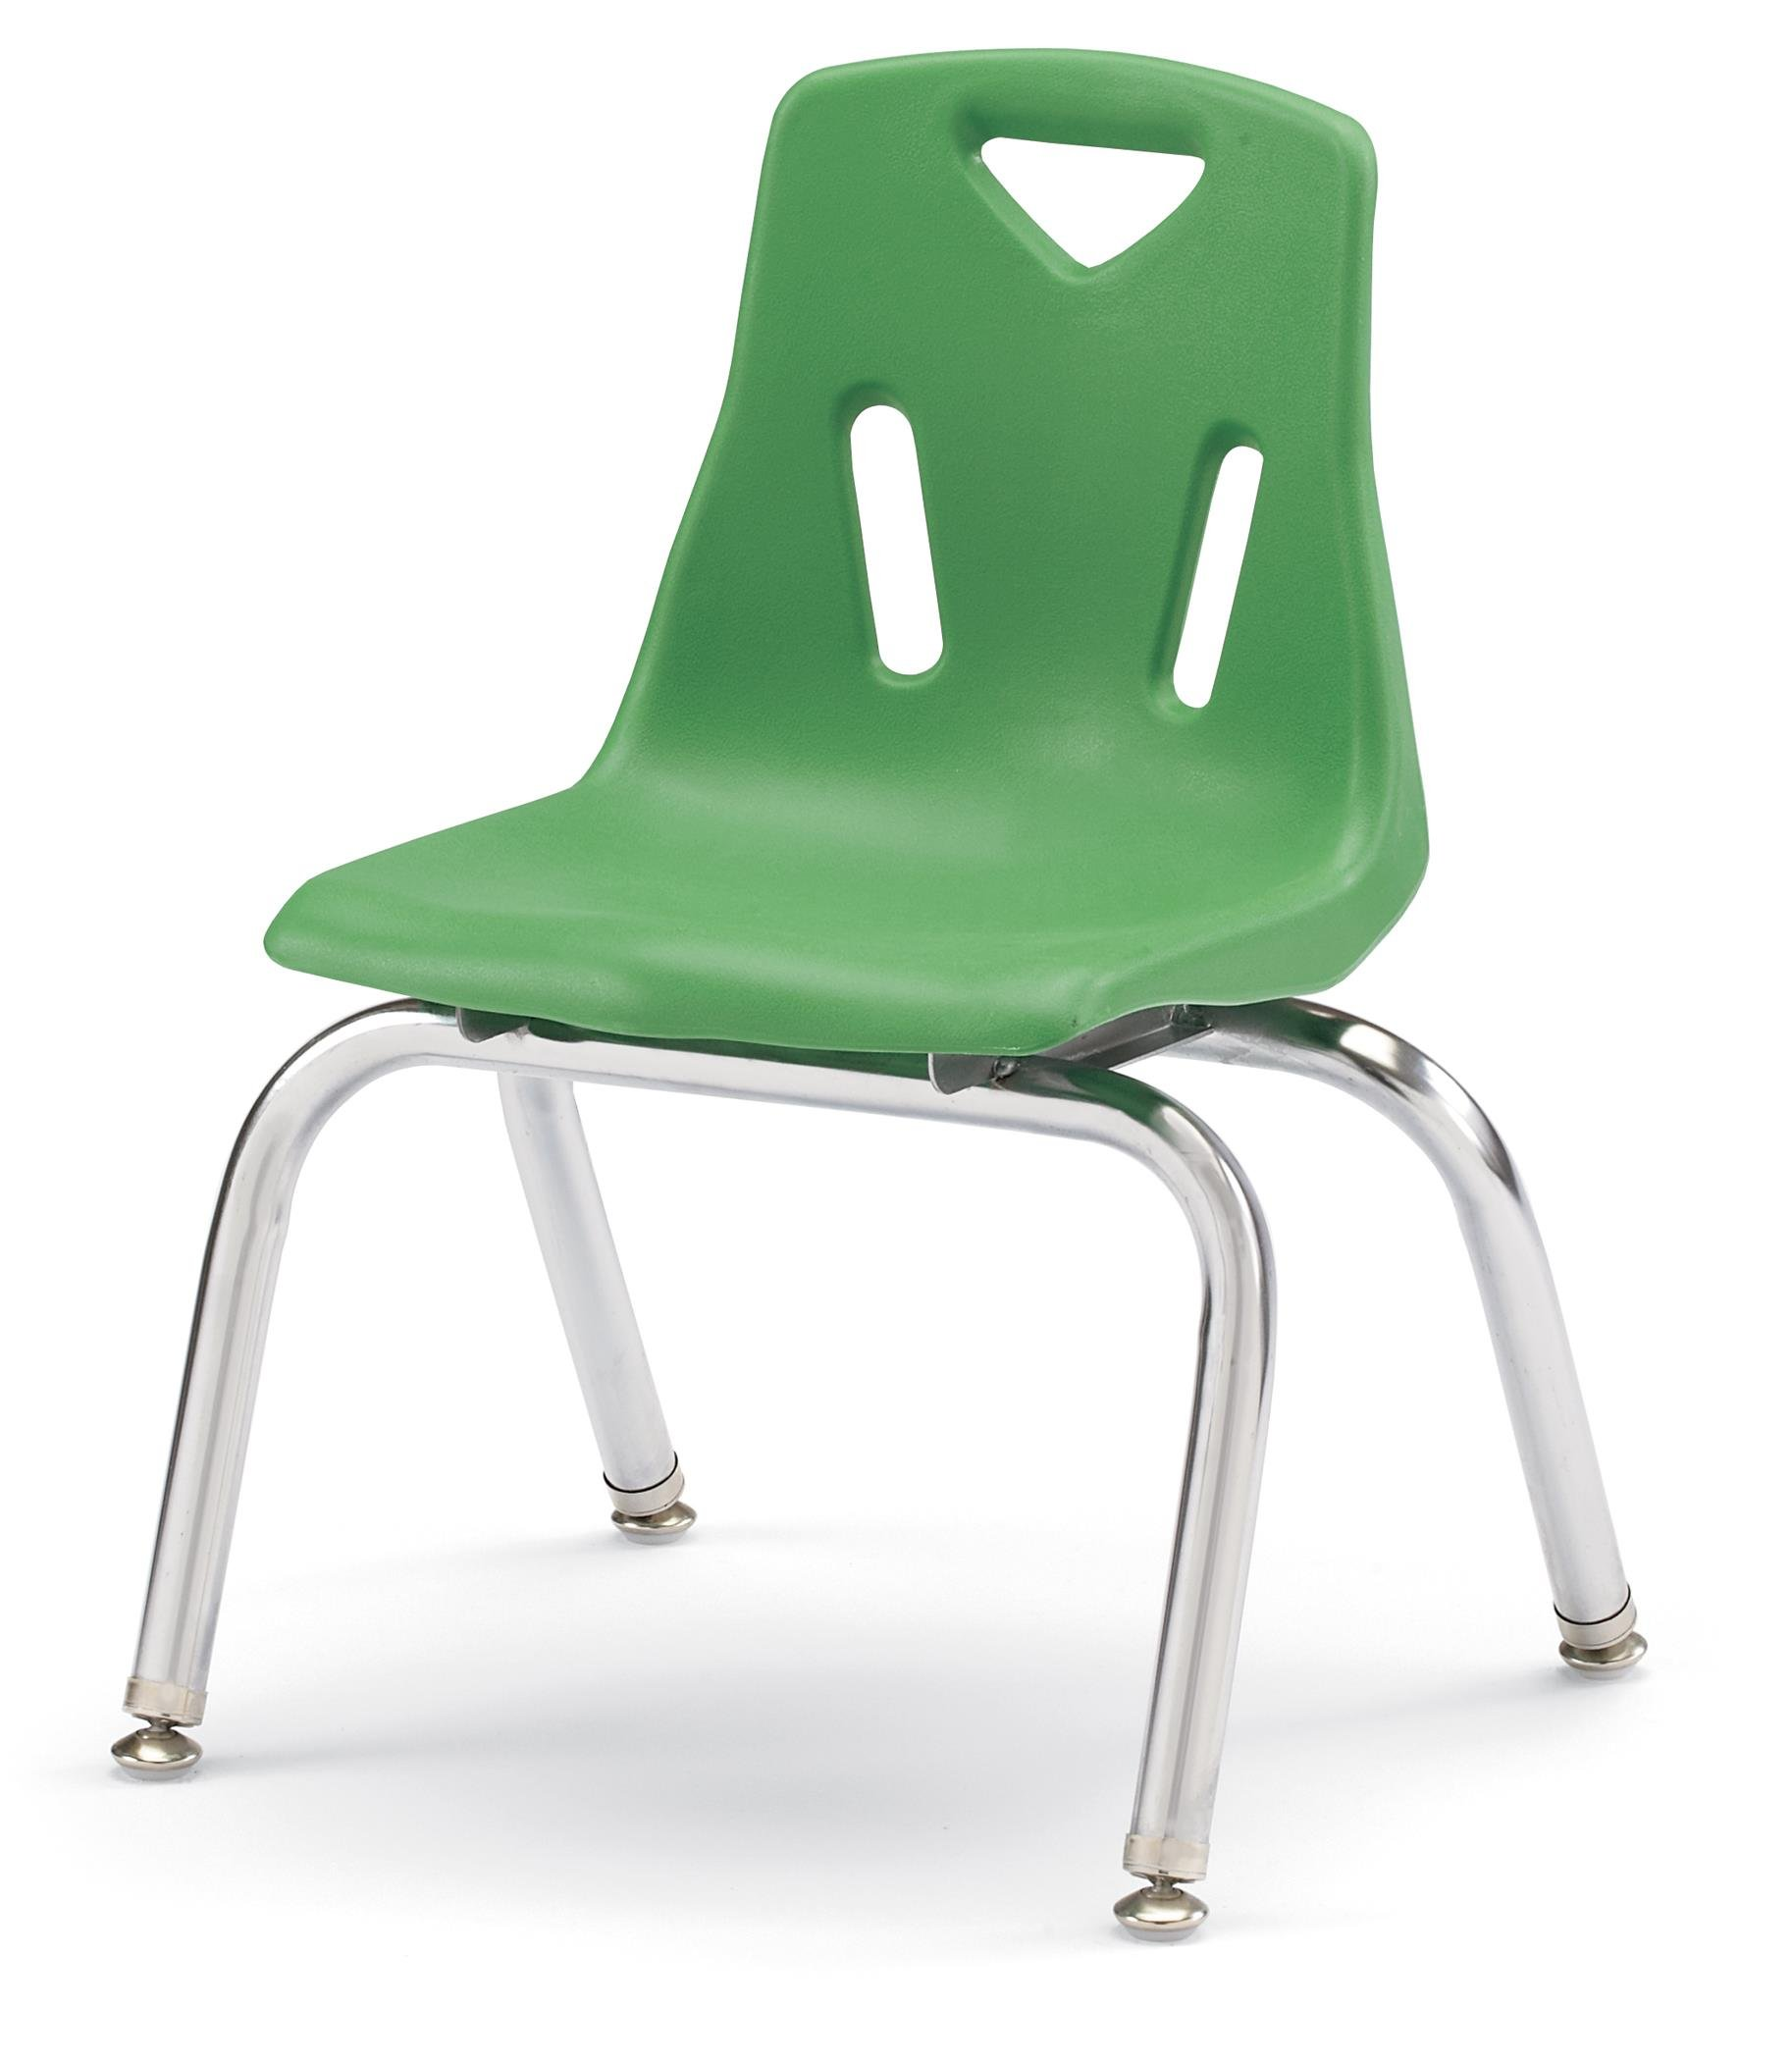 Berries 8148JC6119 Stacking Chairs with Chrome-Plated Legs, 18'' Ht, 19.5'' Height, 31.5'' Wide, 23.5'' Length, Green (Pack of 6)